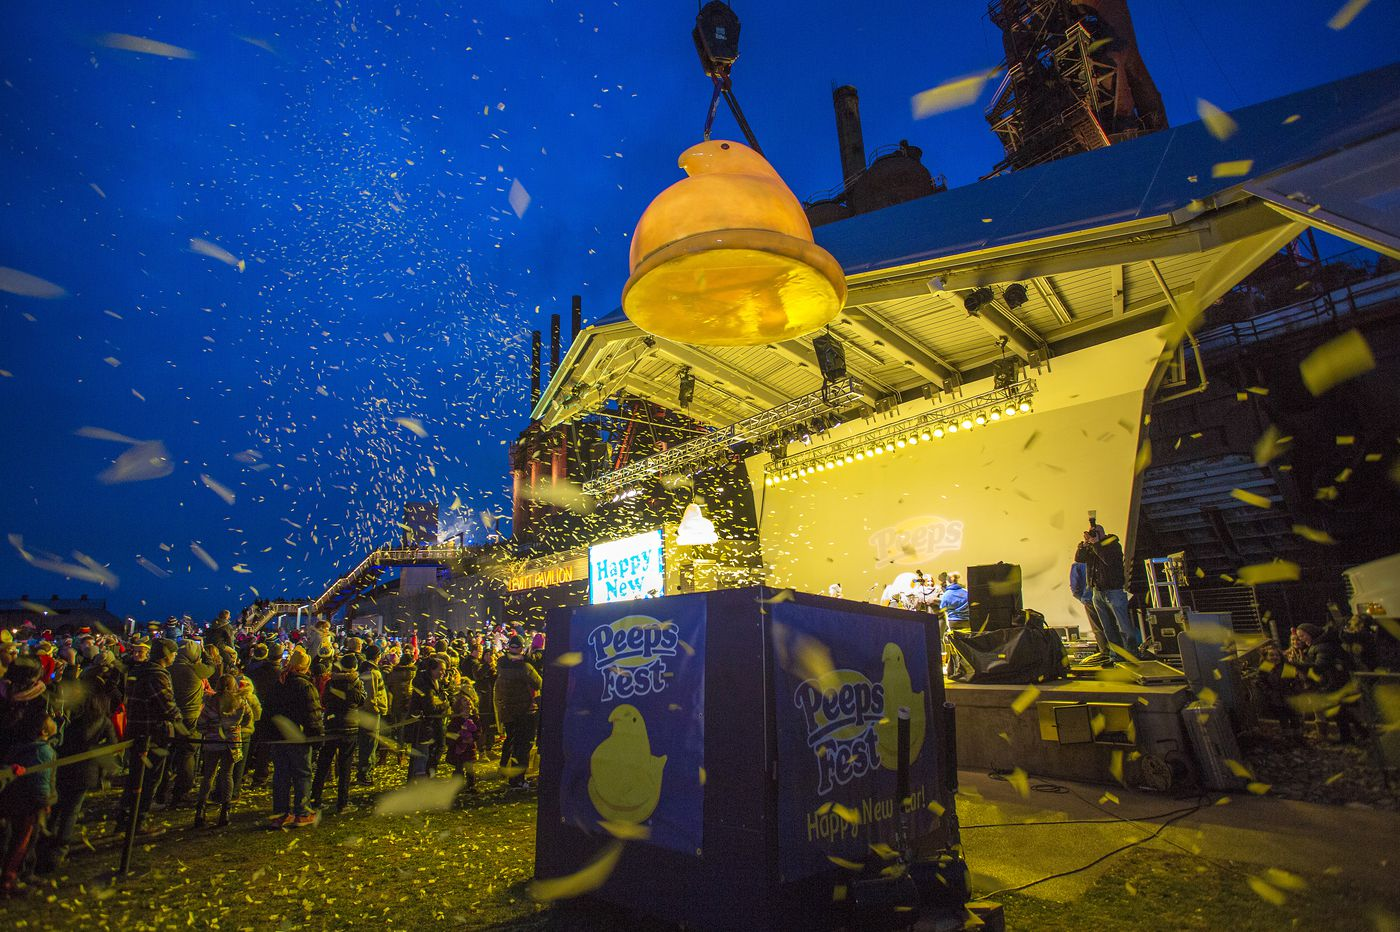 Weird New Year's Eve 'drops' in Pennsylvania: Sleds, pickles, and britches